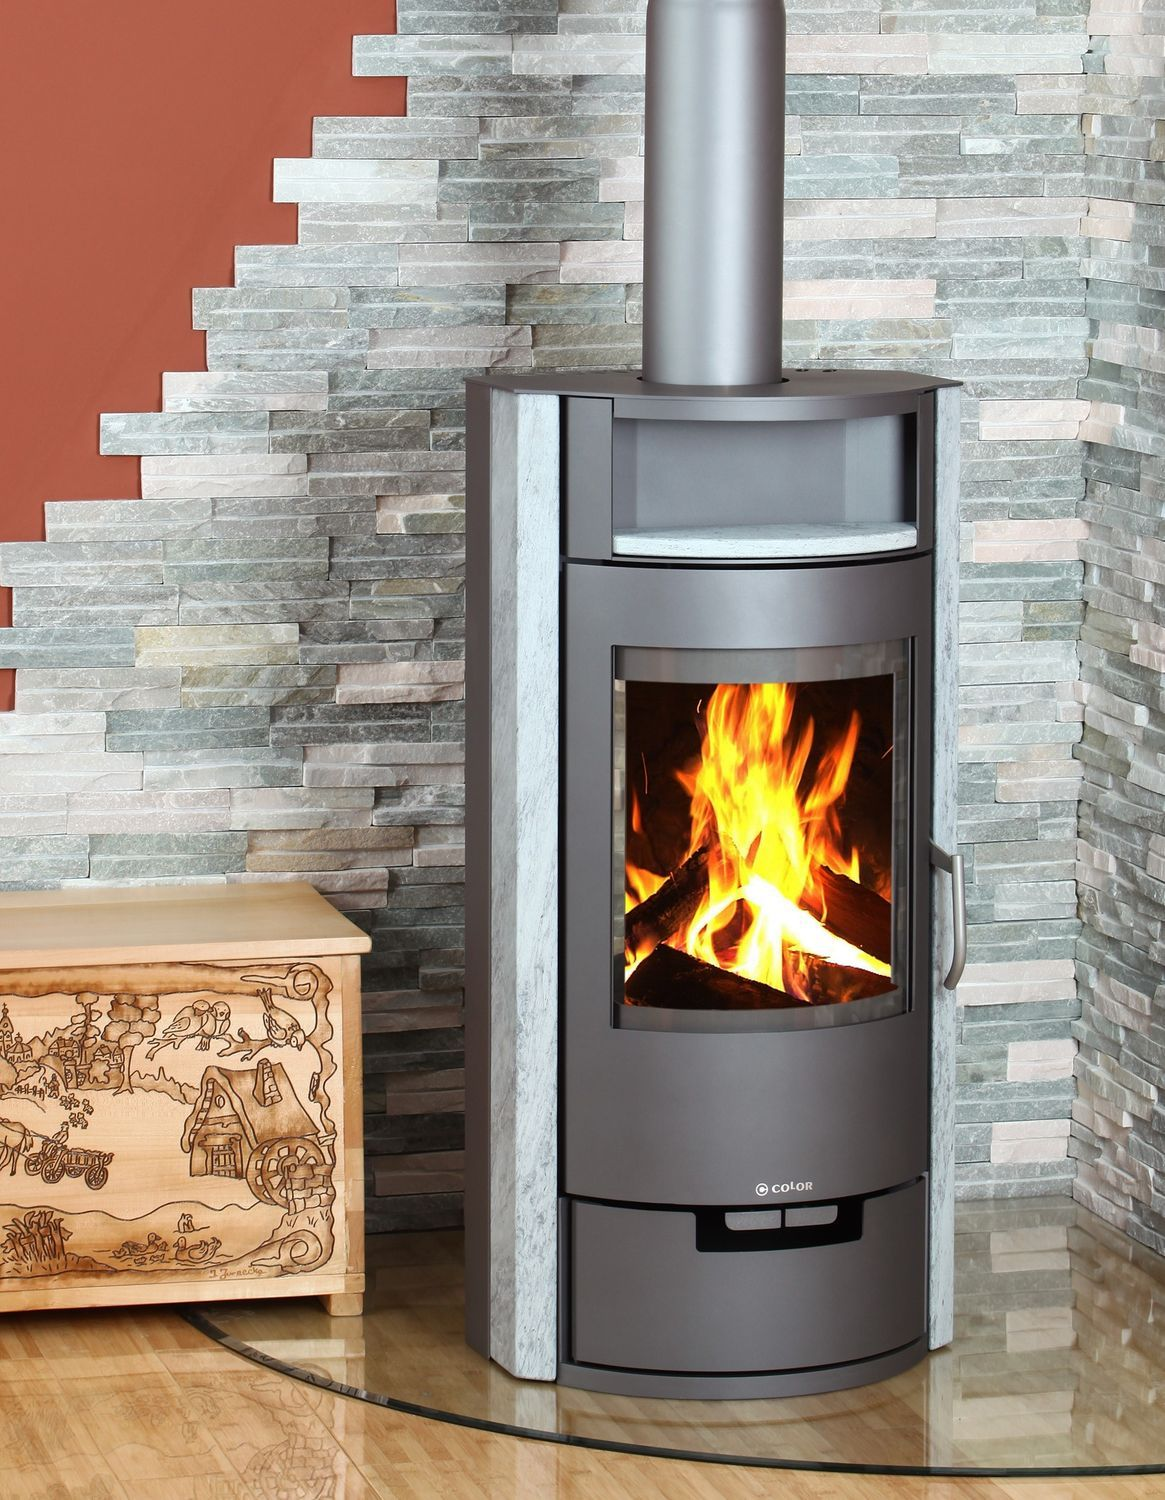 soho free burning cold wood in fireplace will stoves the standing team that fireplaces your faris furnace leave